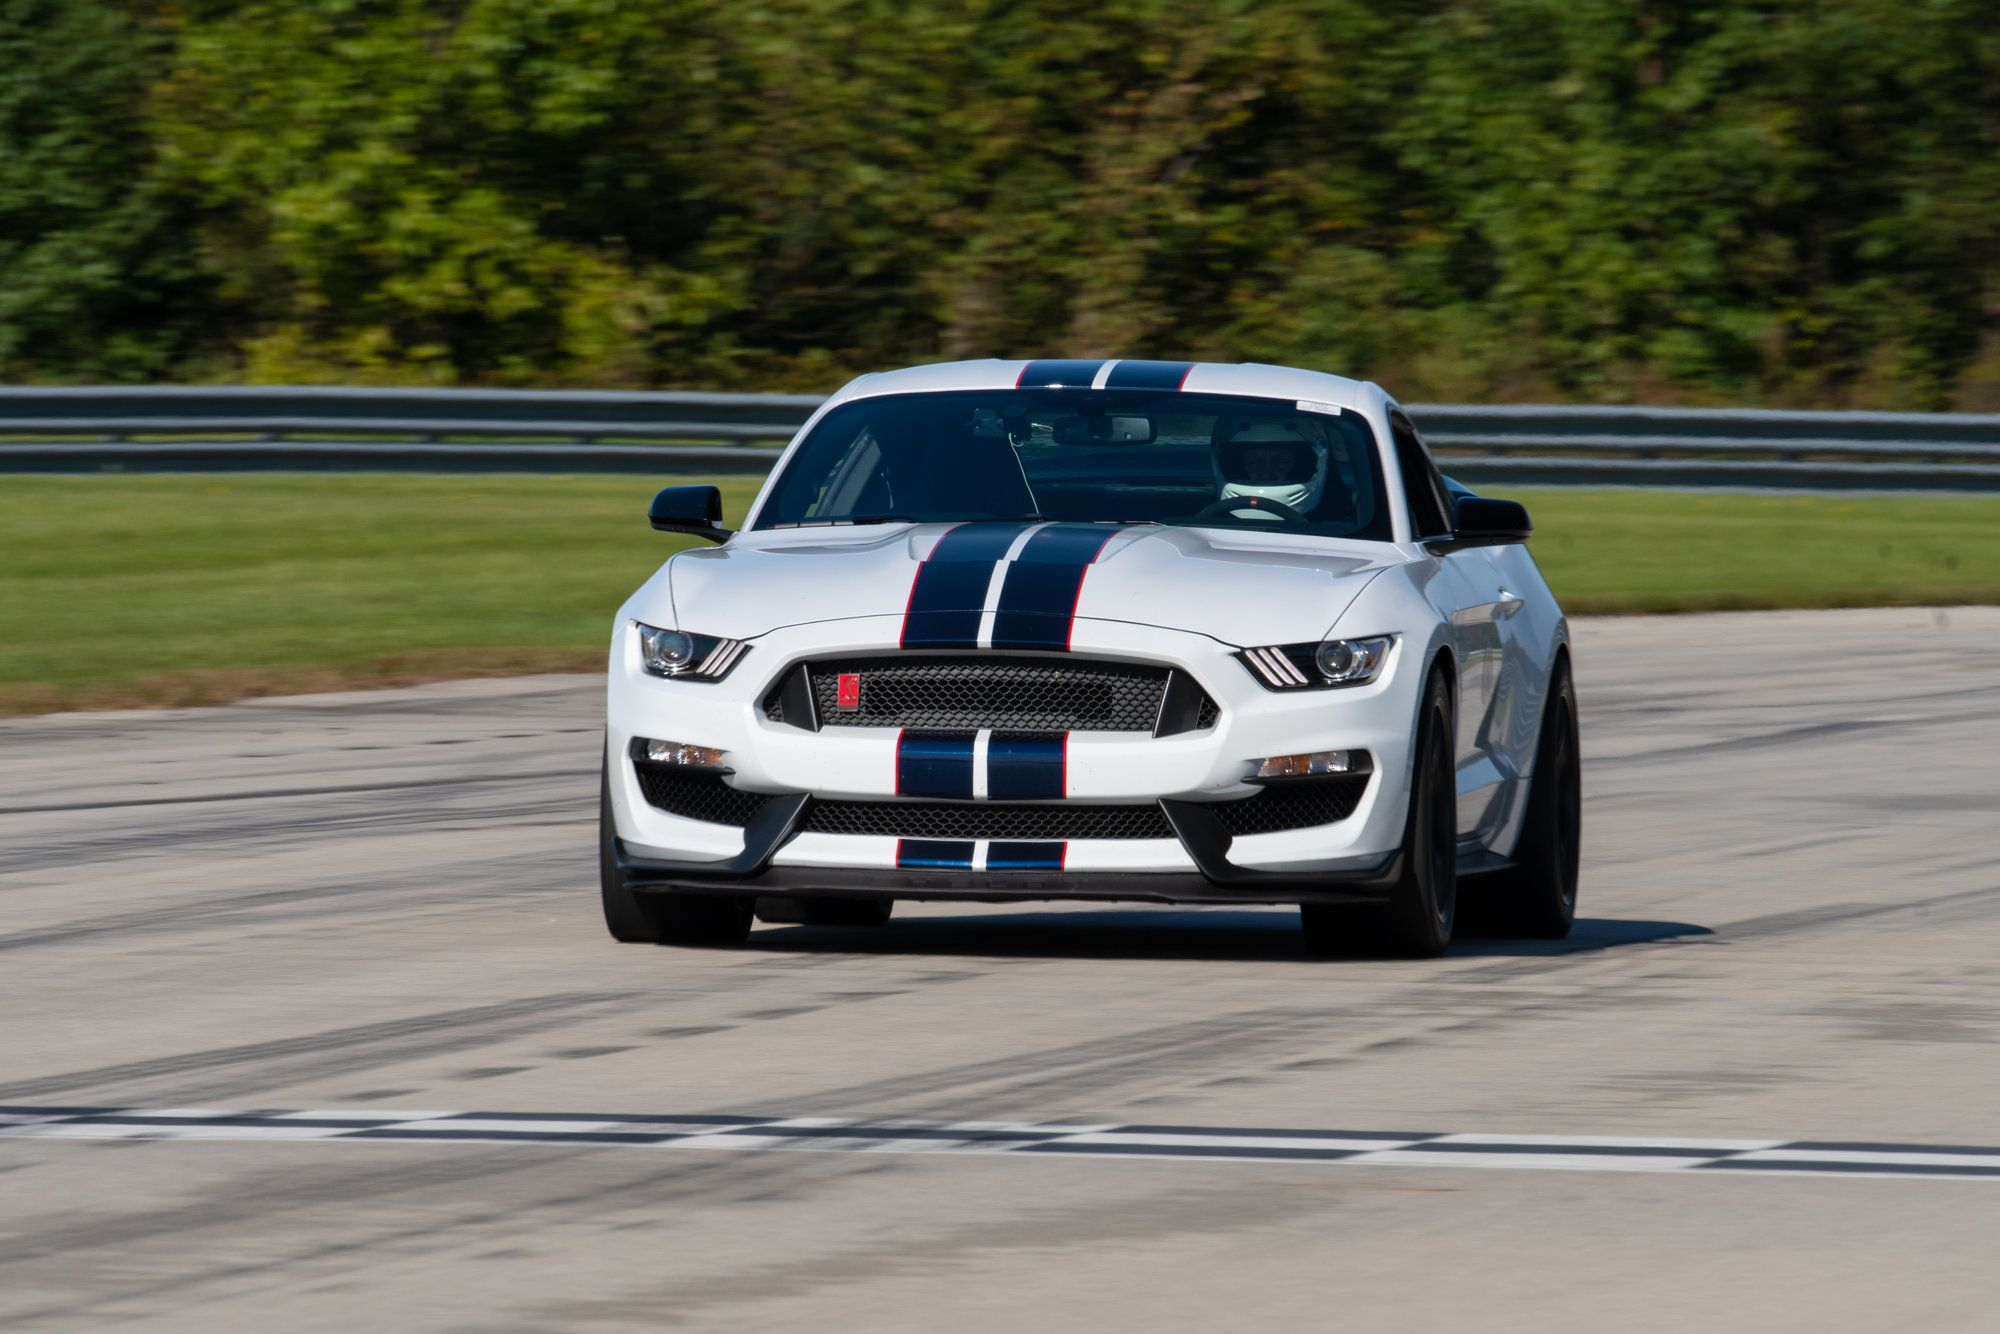 HPDE/Track - GT350R Vehicle Profile - S550 Mustangs